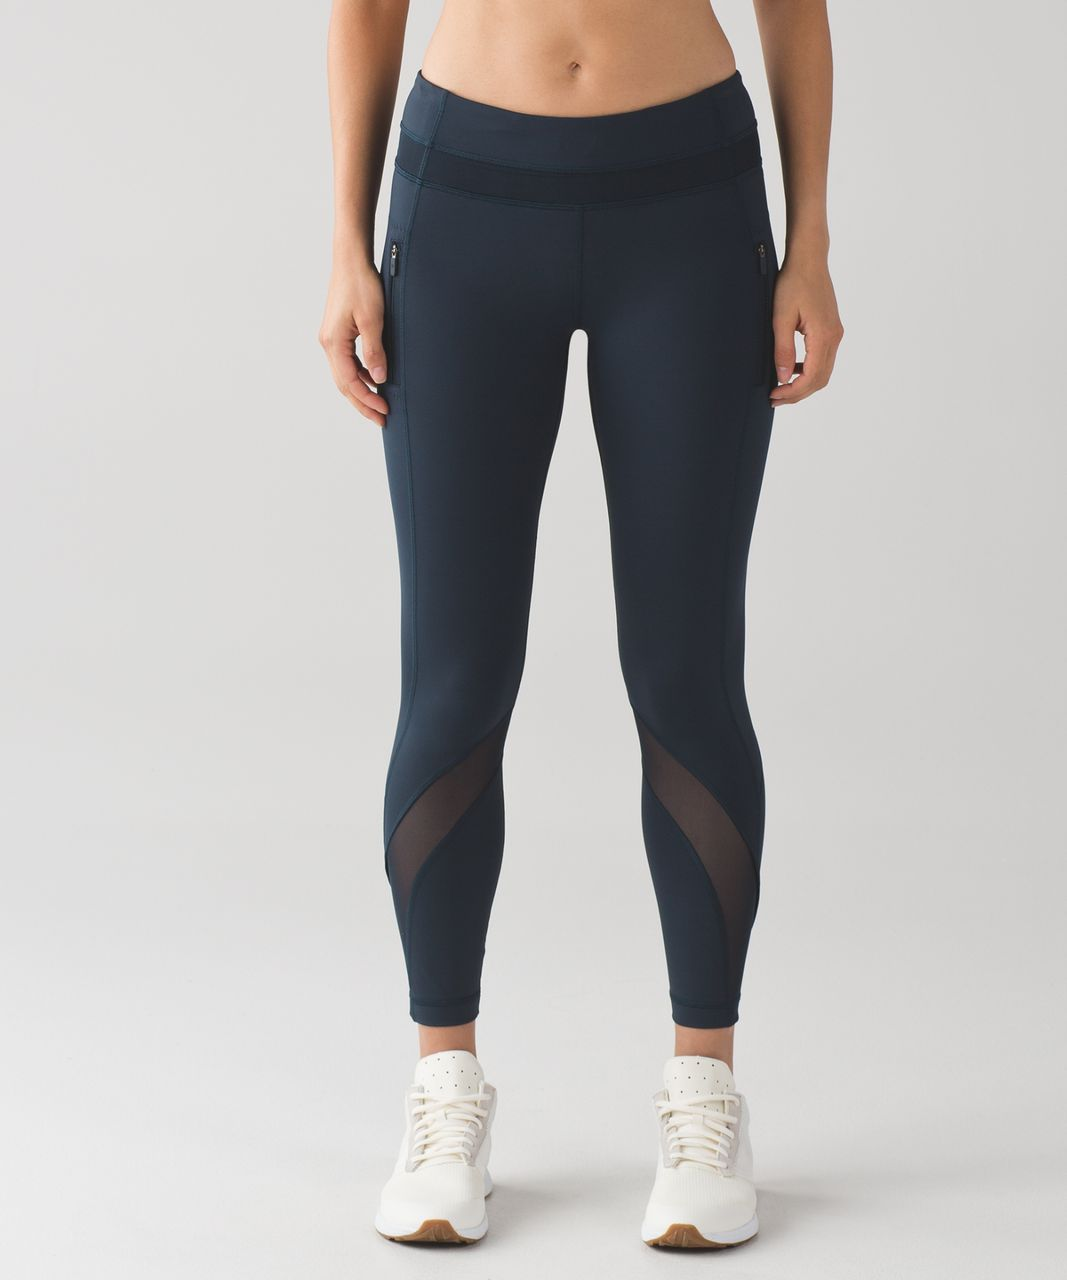 a5b3ef8eed Lululemon Inspire Tight II - Nocturnal Teal - lulu fanatics